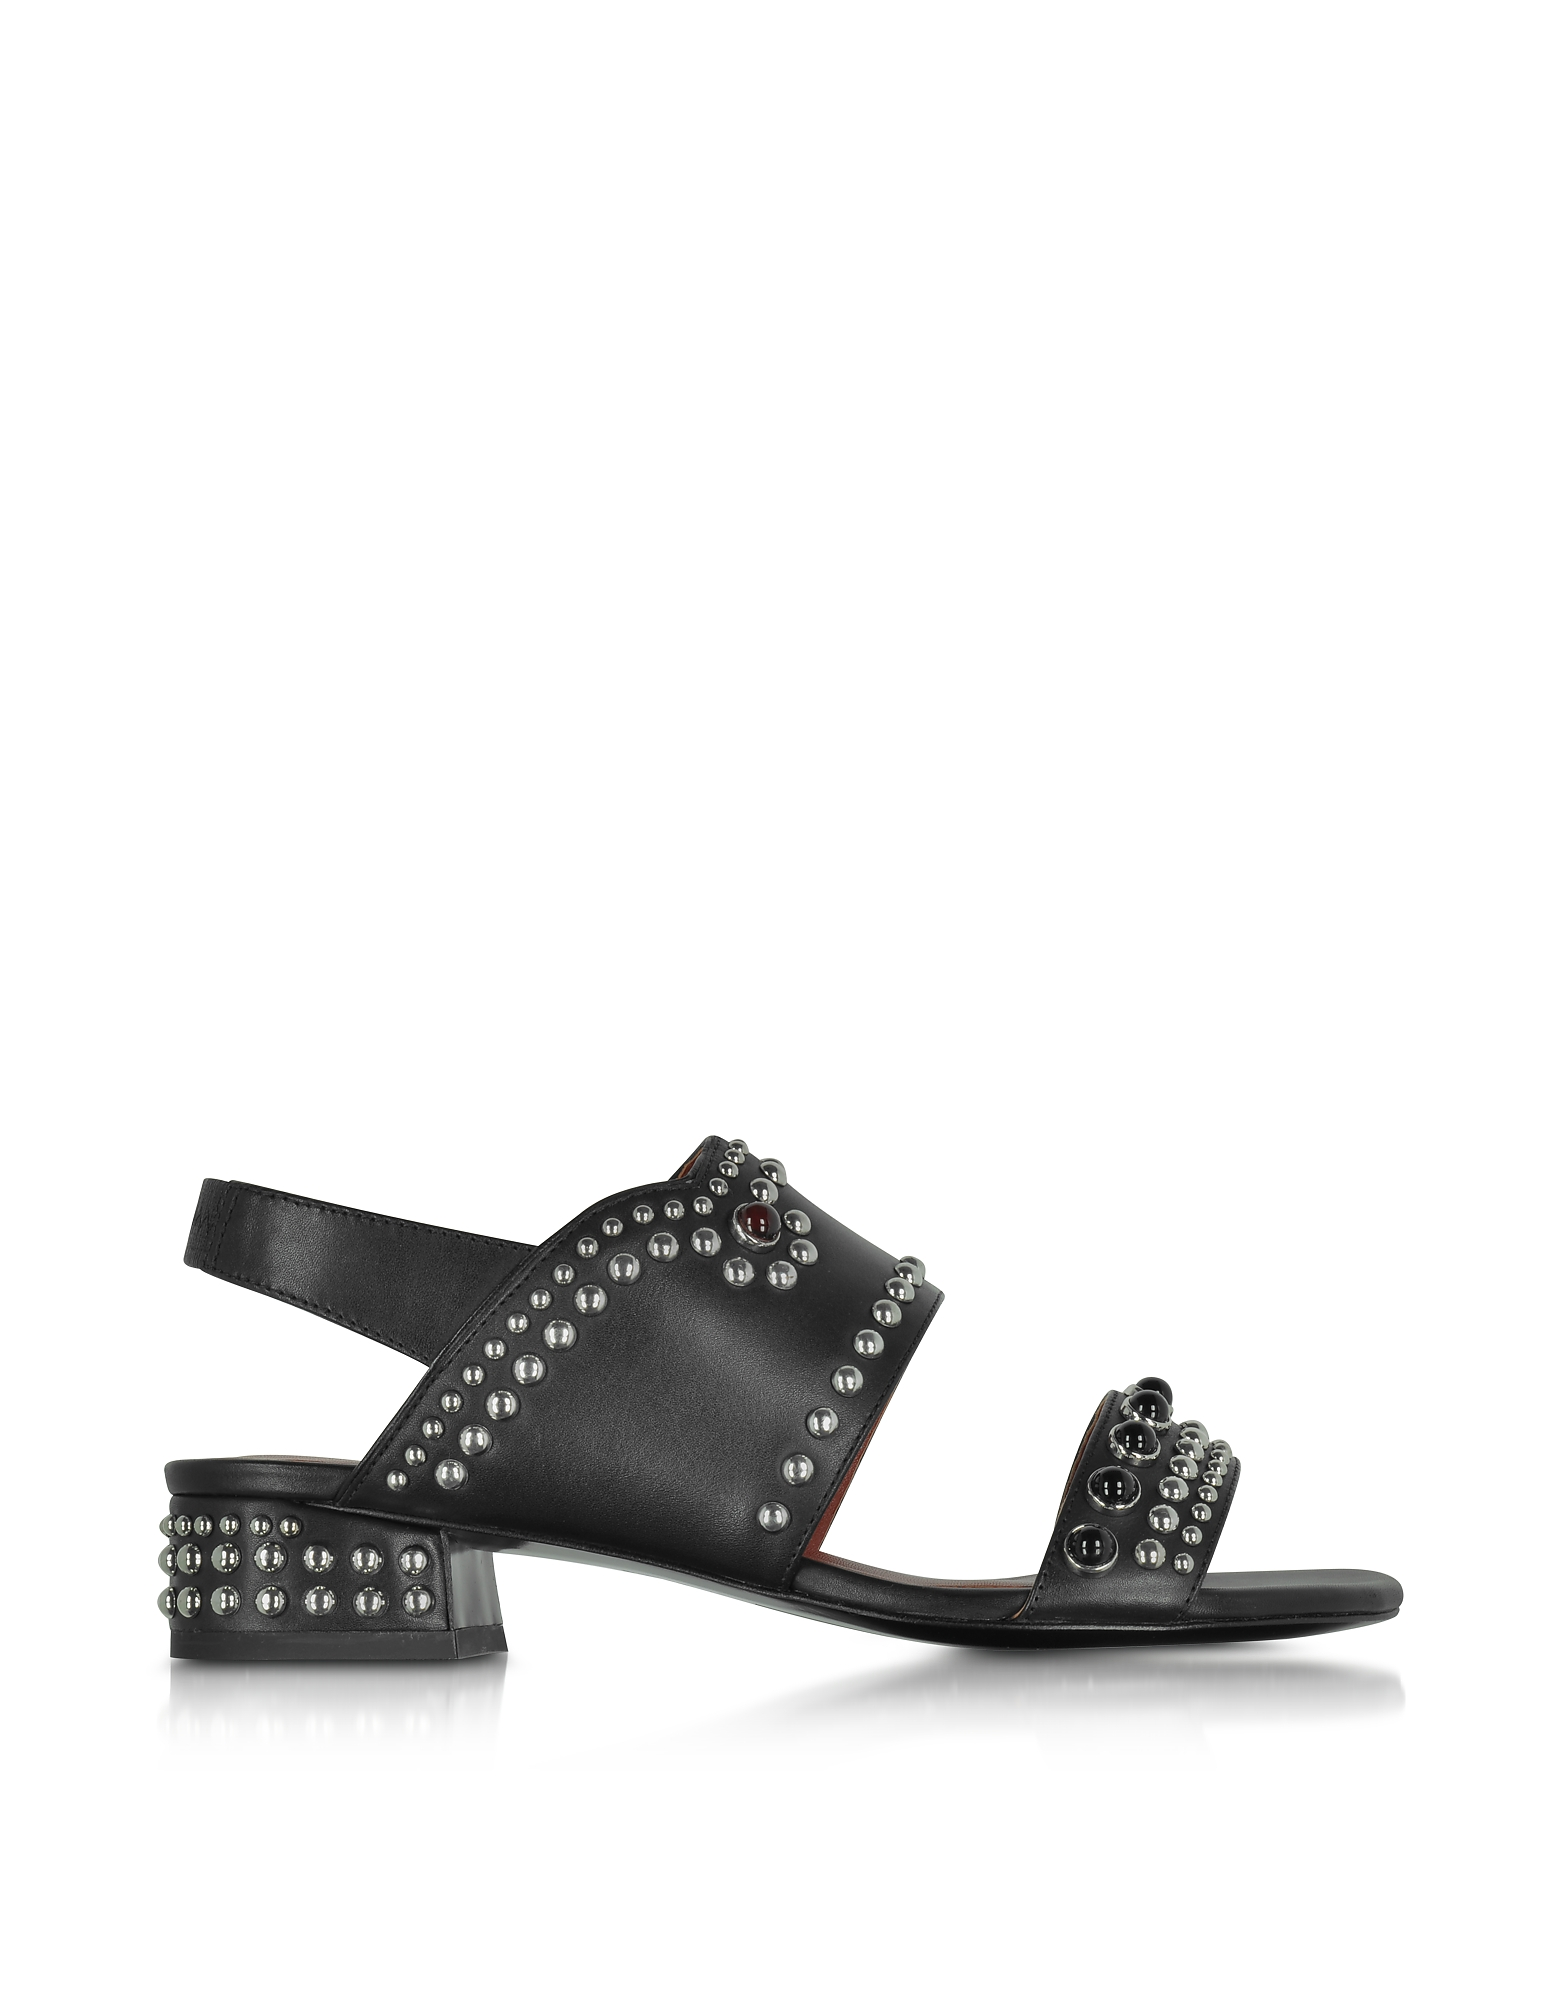 3.1 Phillip Lim Shoes, Black Leather Studded Mid-Heel Sandals